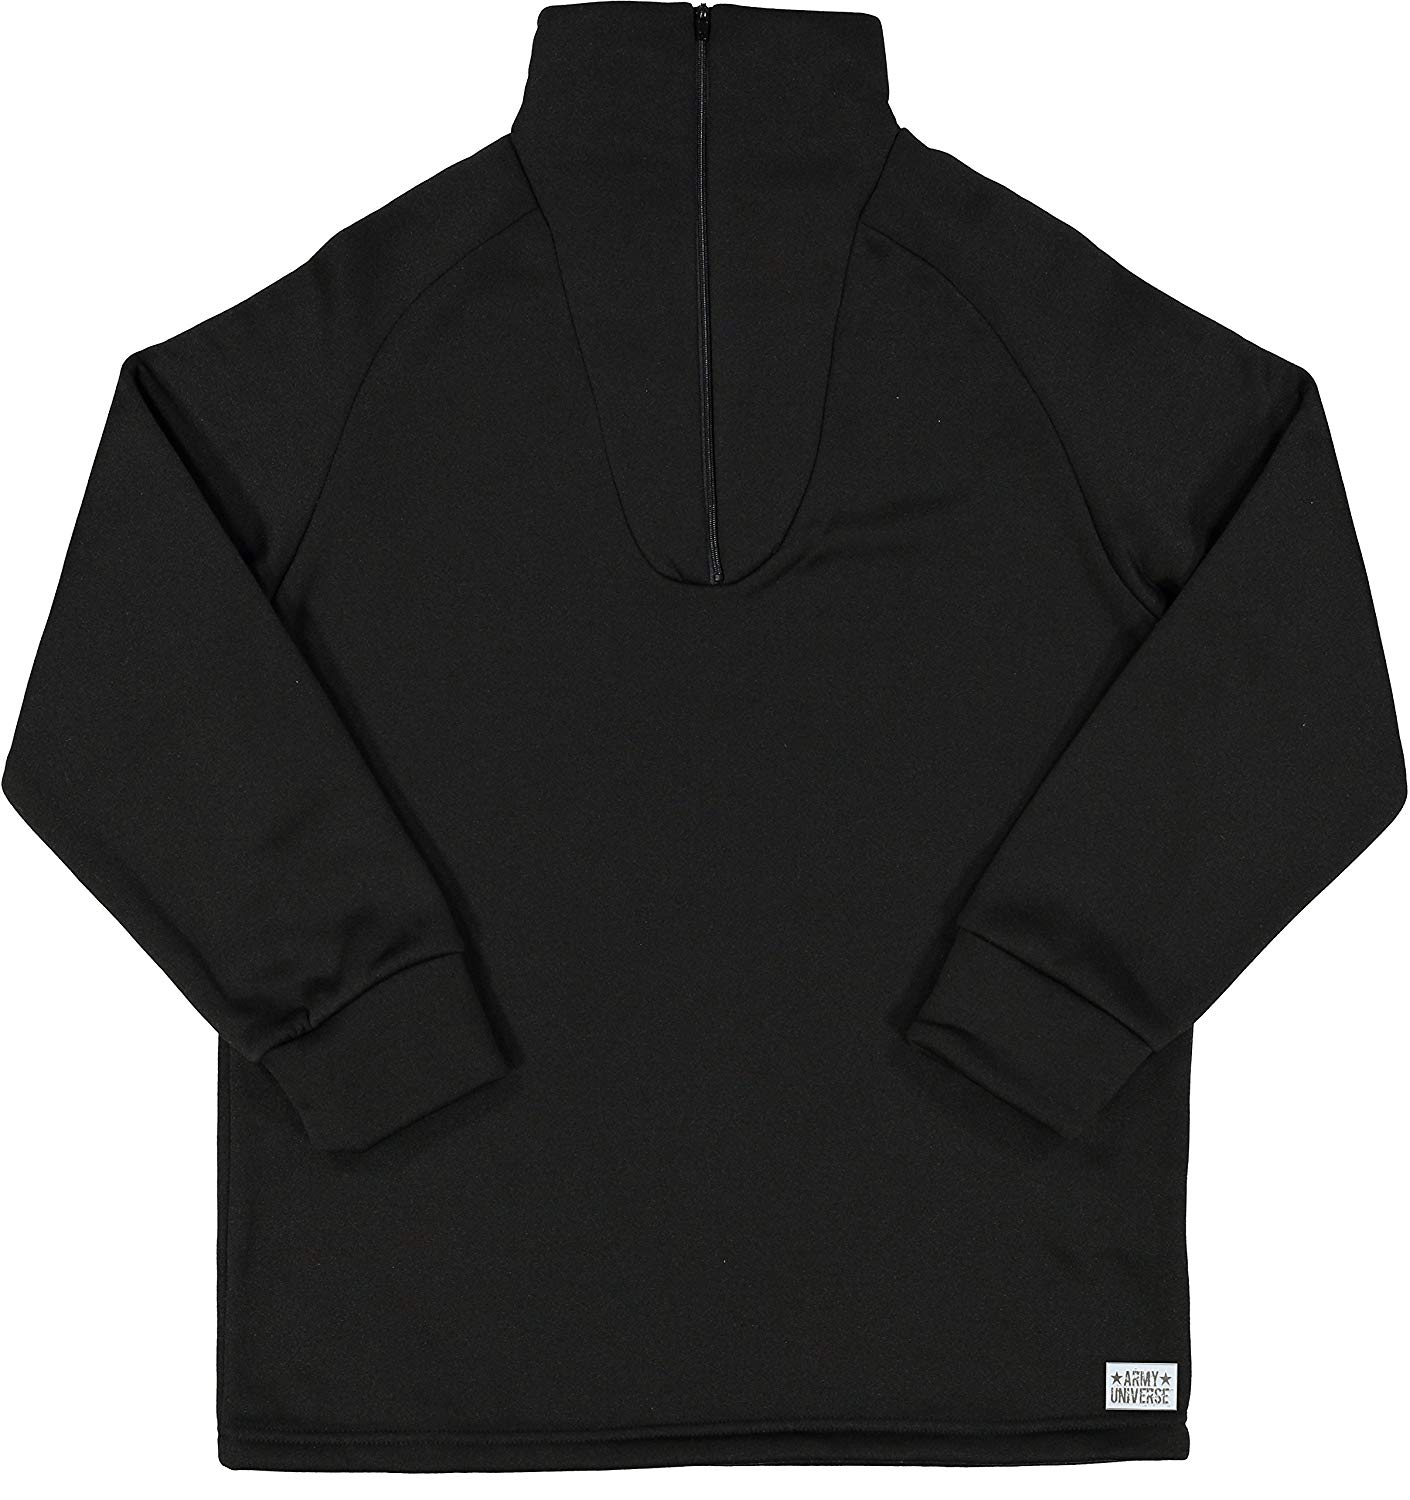 Get Quotations · Army Universe Men s Cold Weather Fleece-Lined Zip UP  Thermal Military ECWCS Shirts Extreme Winter 2bfccb00375